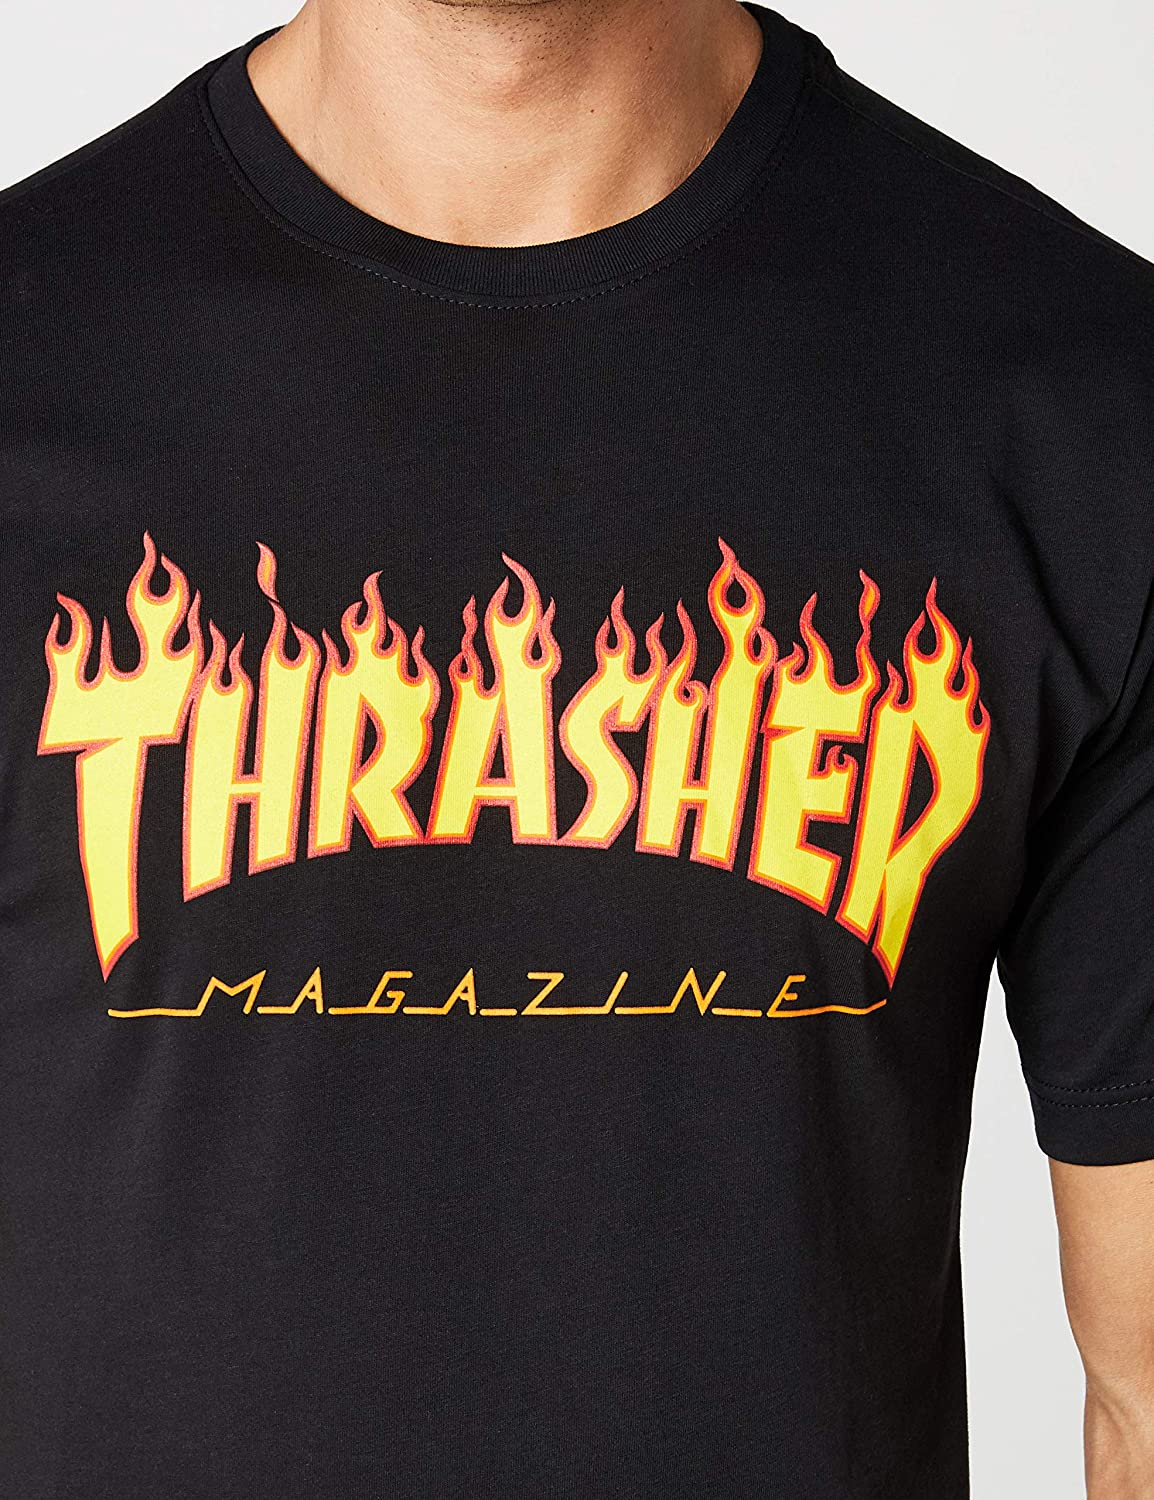 9ebf13a4b404 Amazon.com  Thrasher Flame Short Sleeve T-Shirt  Clothing